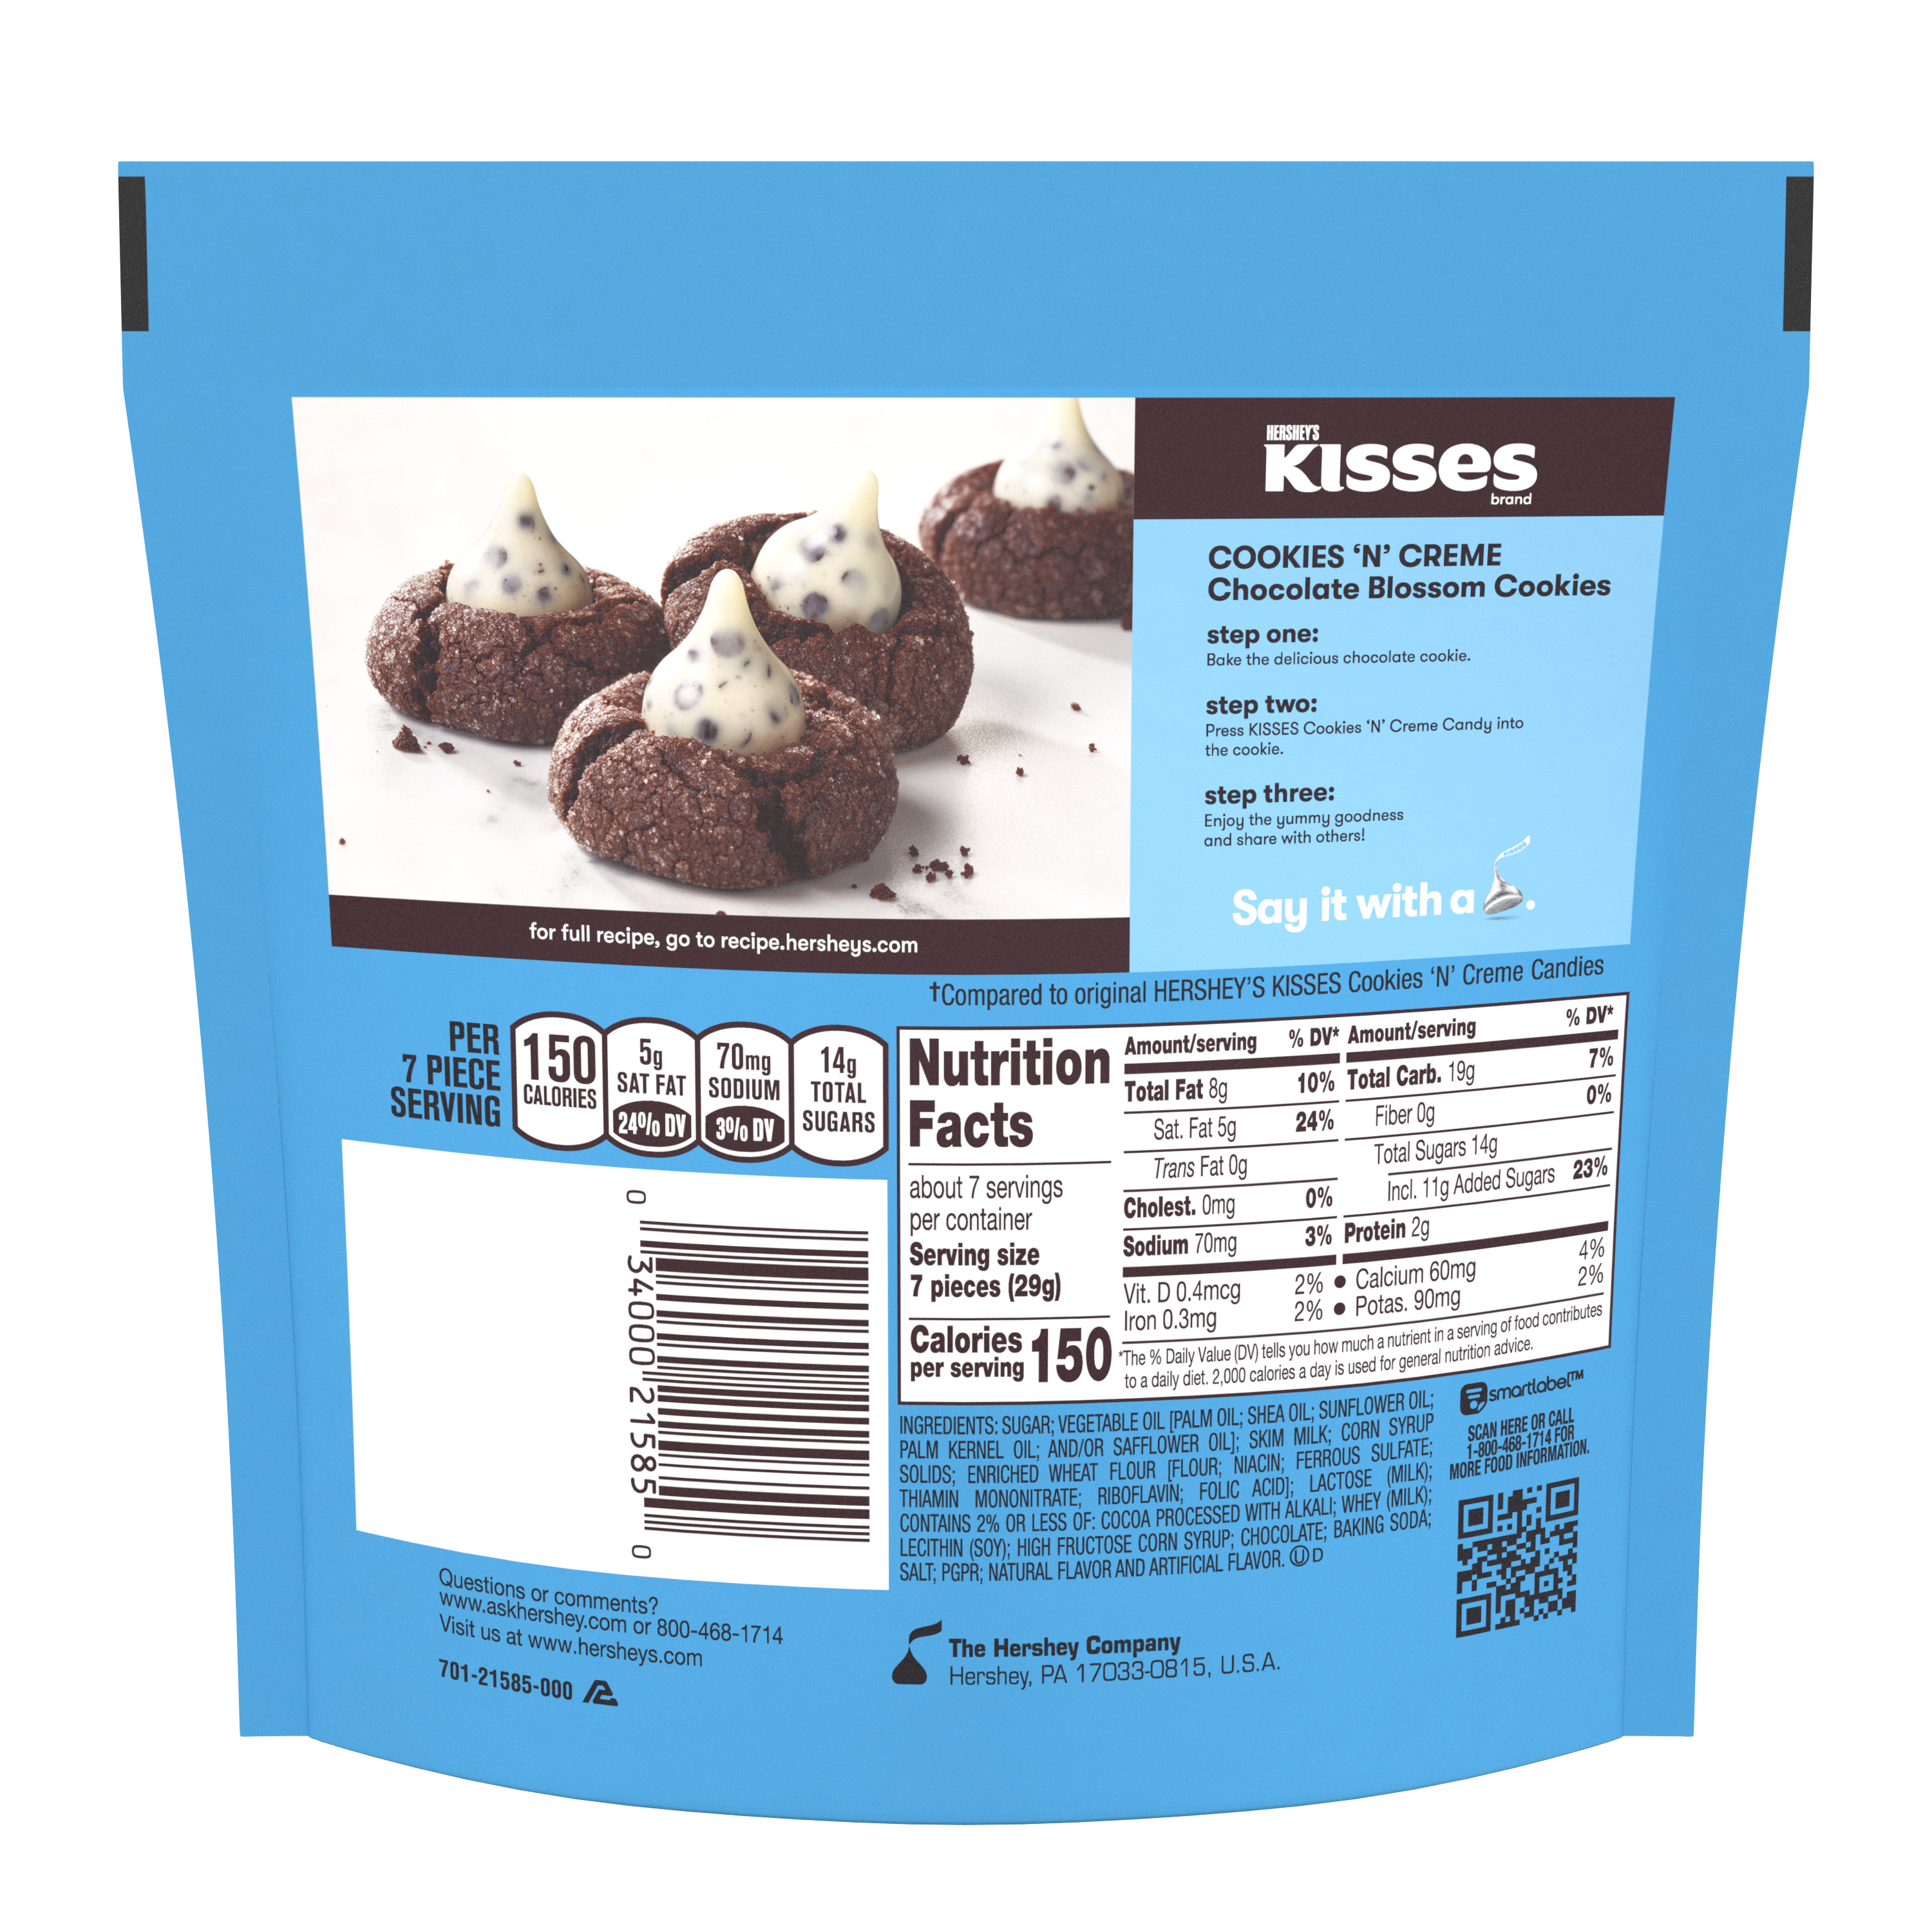 HERSHEY'S KISSES COOKIES 'N' CREME Candy, 7.6 oz pack - Back of Package